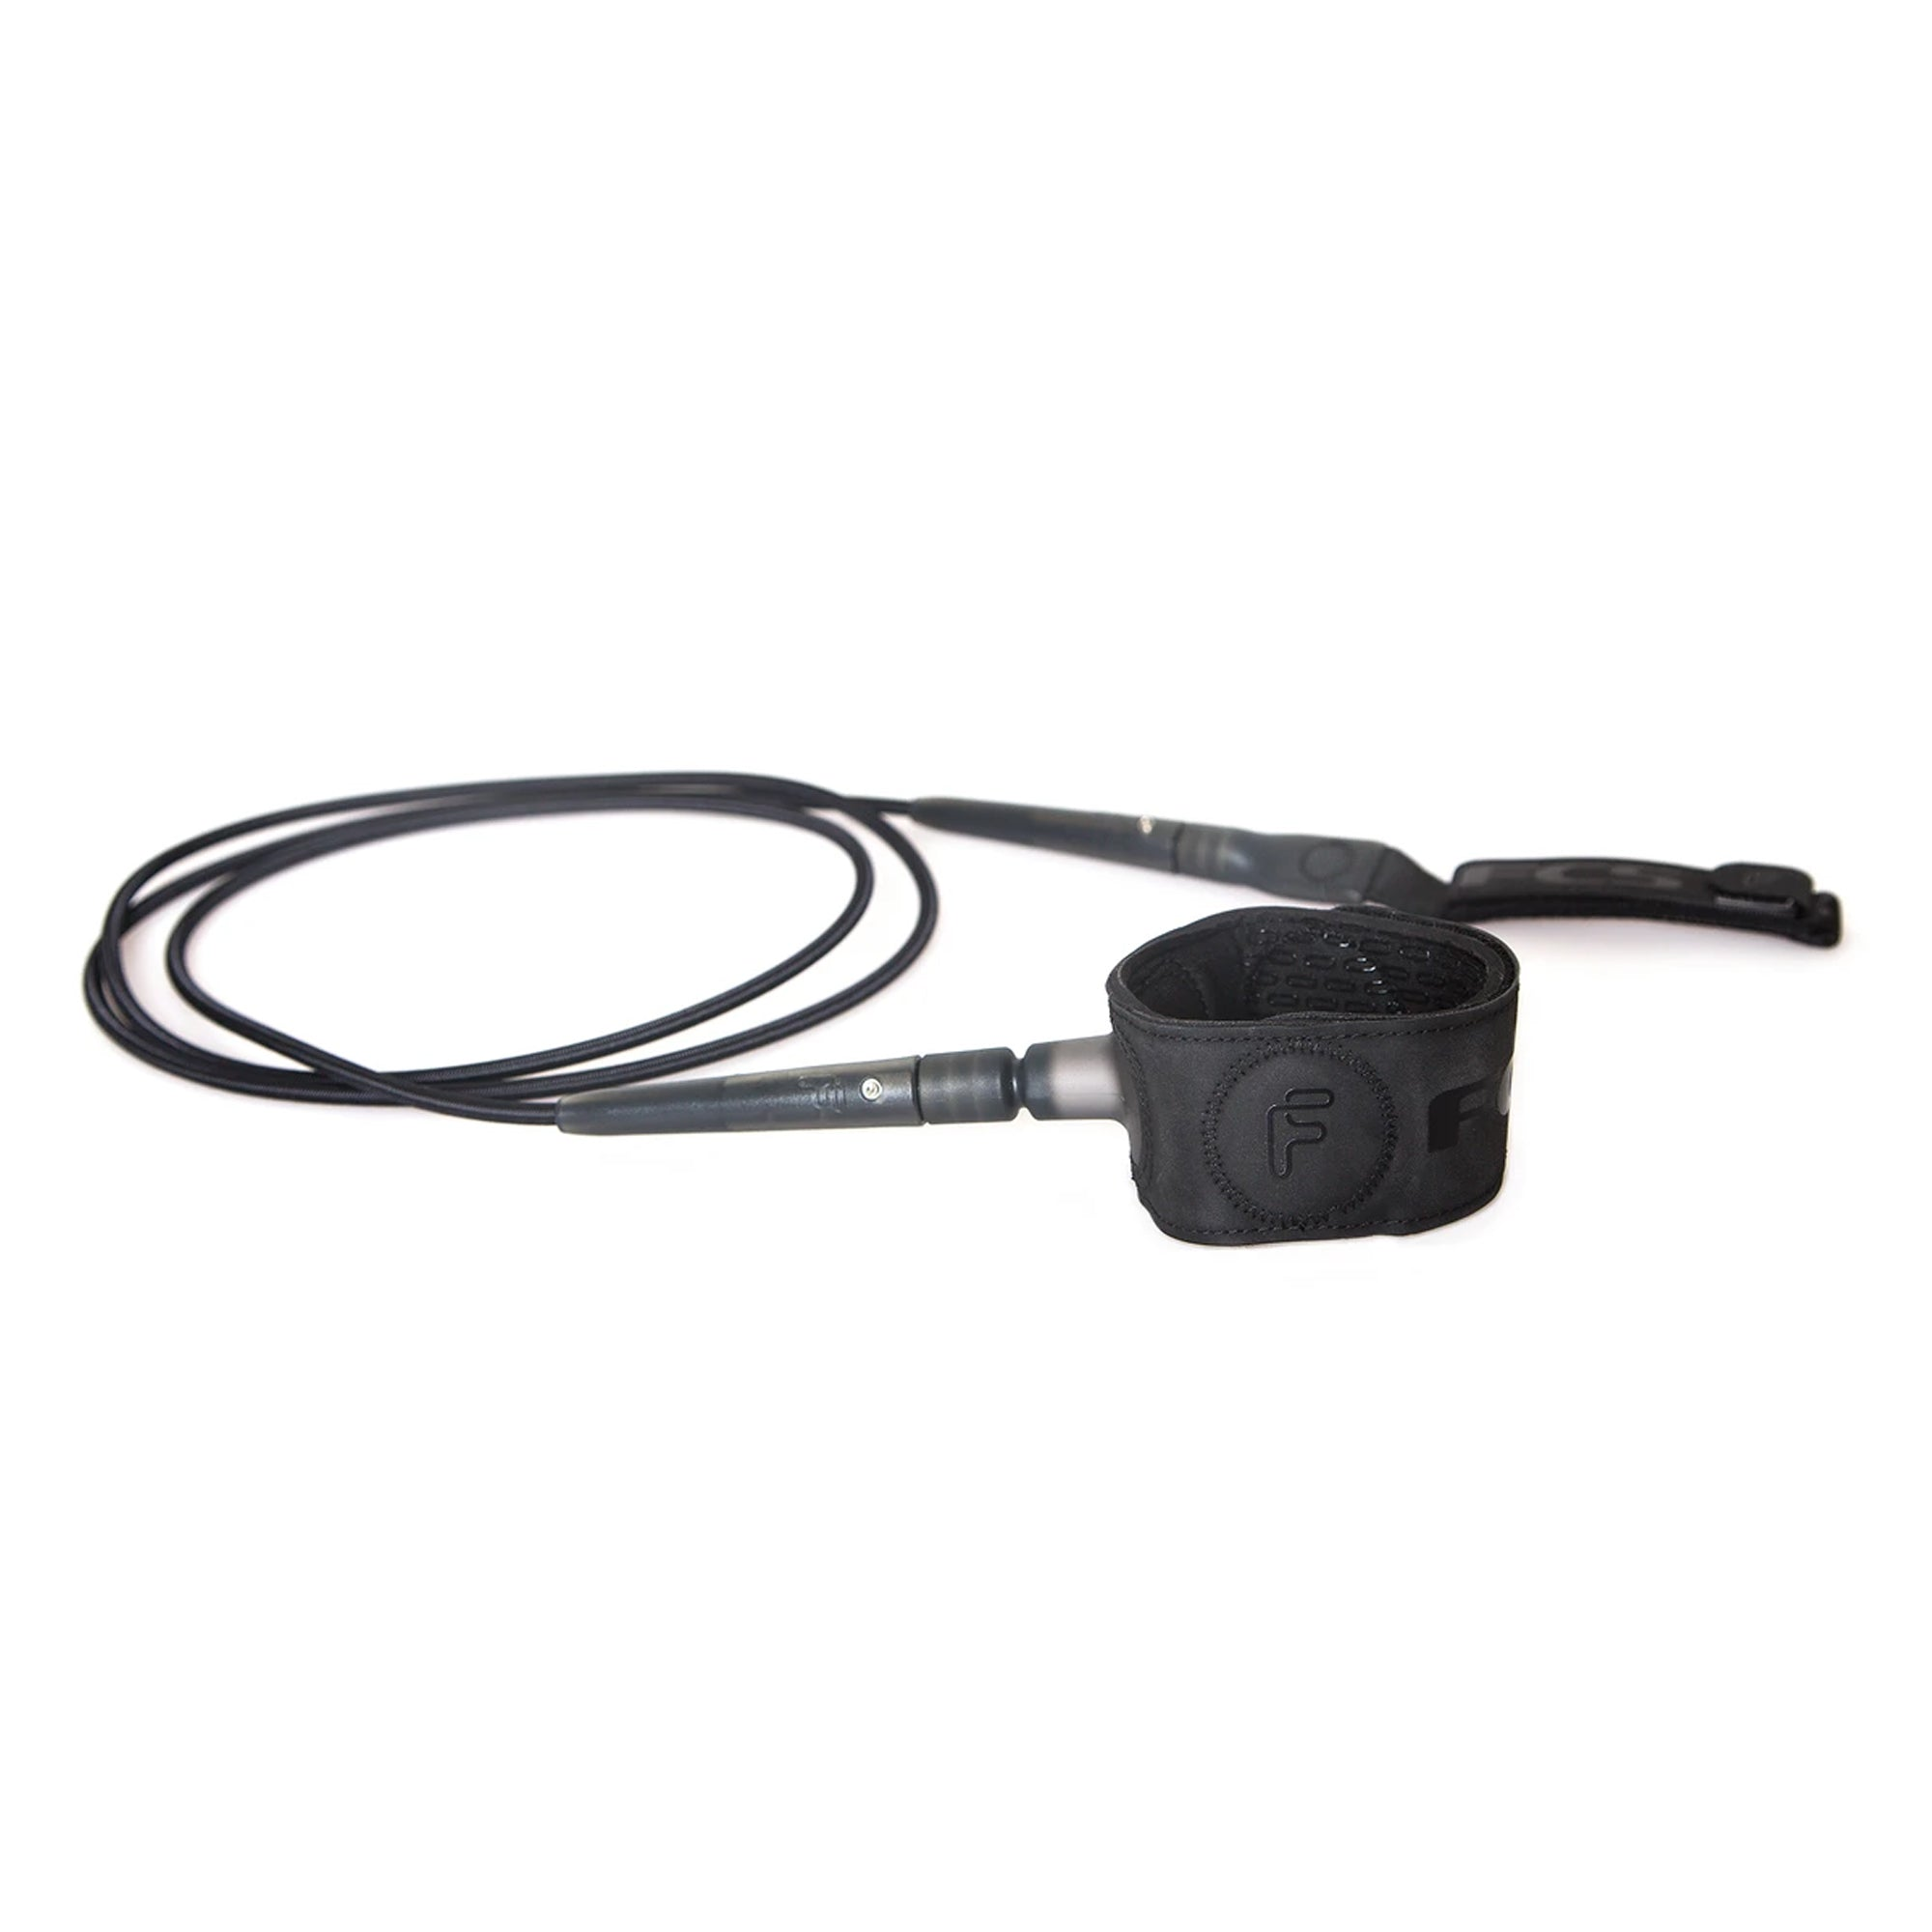 FCS Freedom 6' Surfboard Leash - Black